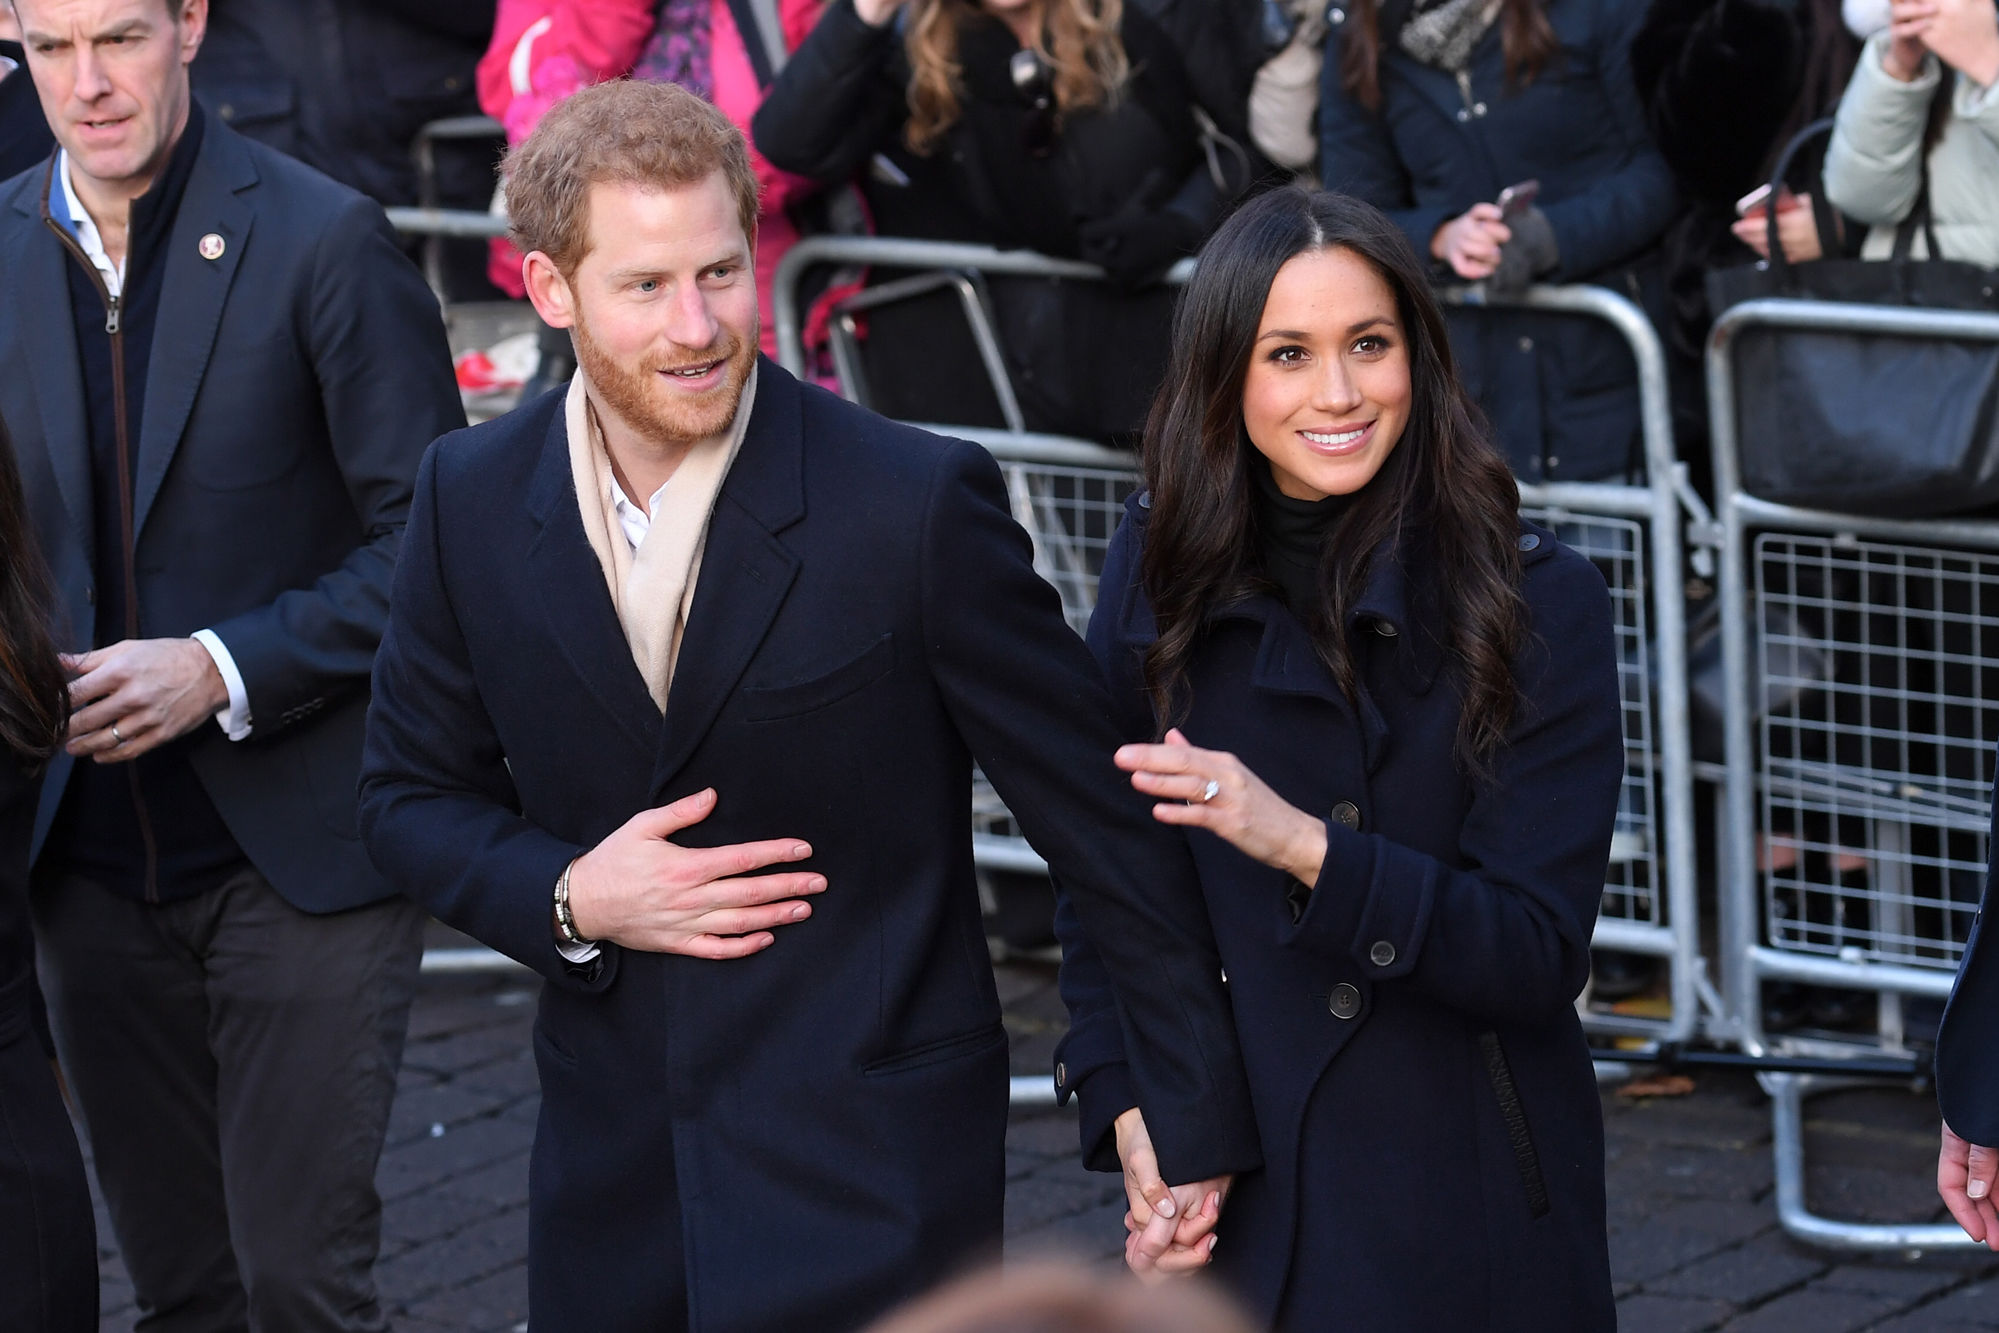 Prince Harry and Meghan Markle Make Their First Royal Appearance in Nottingham